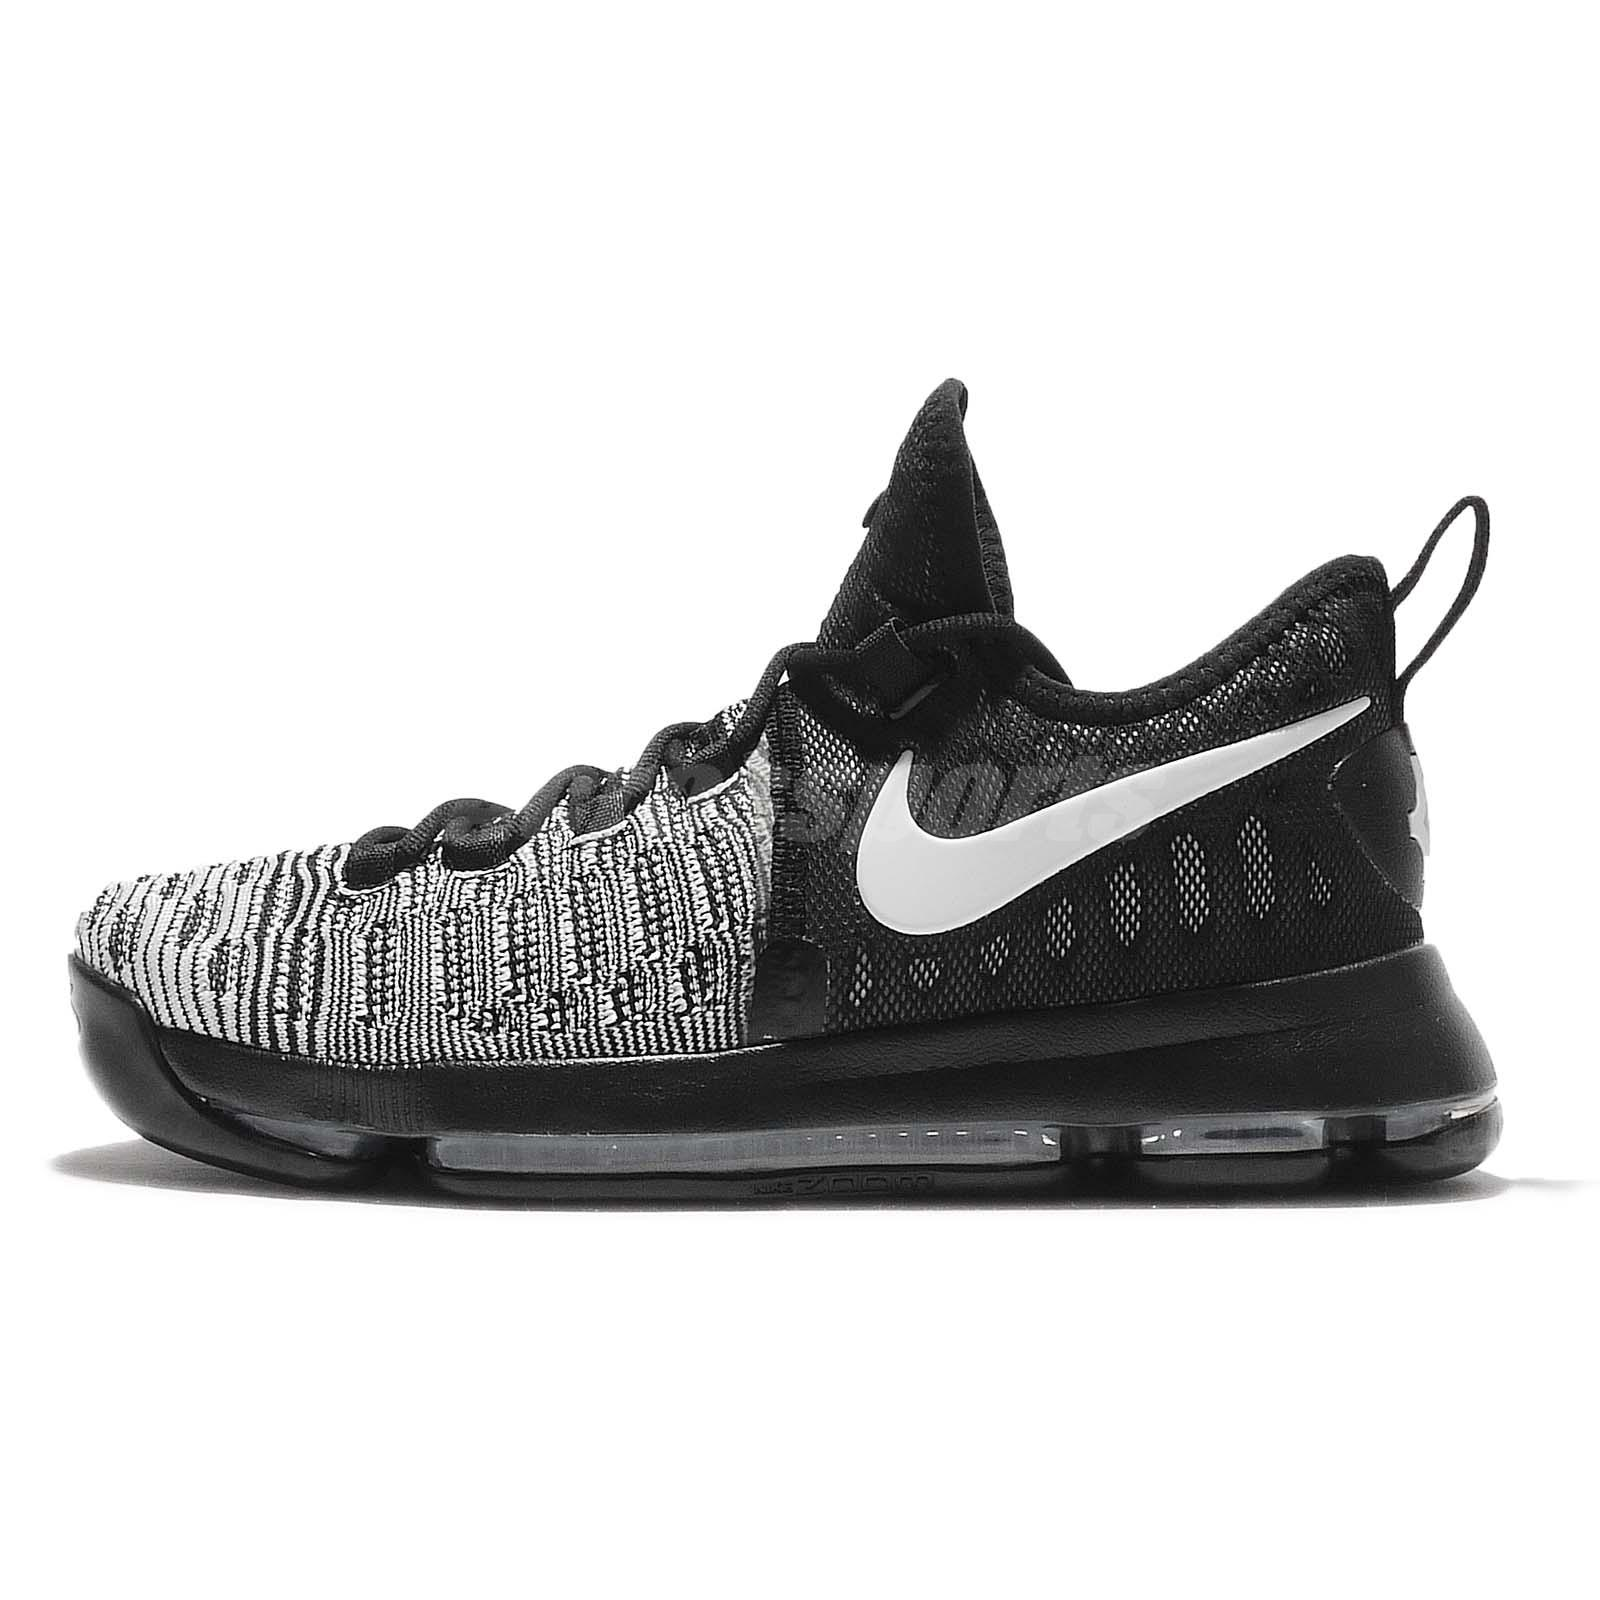 new style 87652 719aa Basketball shoes kd 9